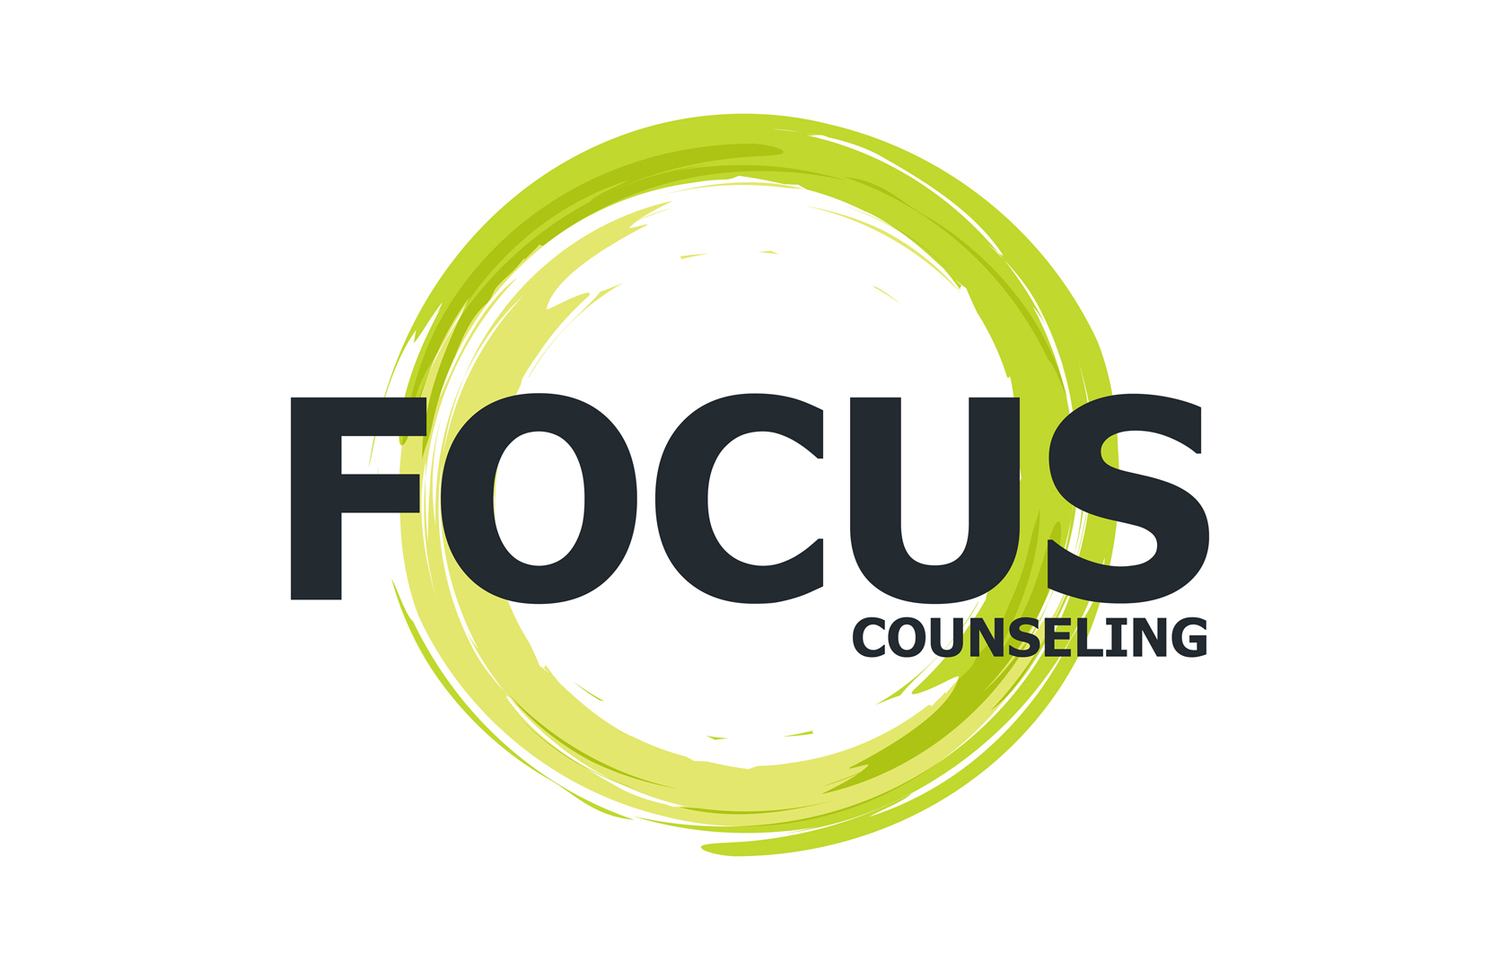 Focus Counseling